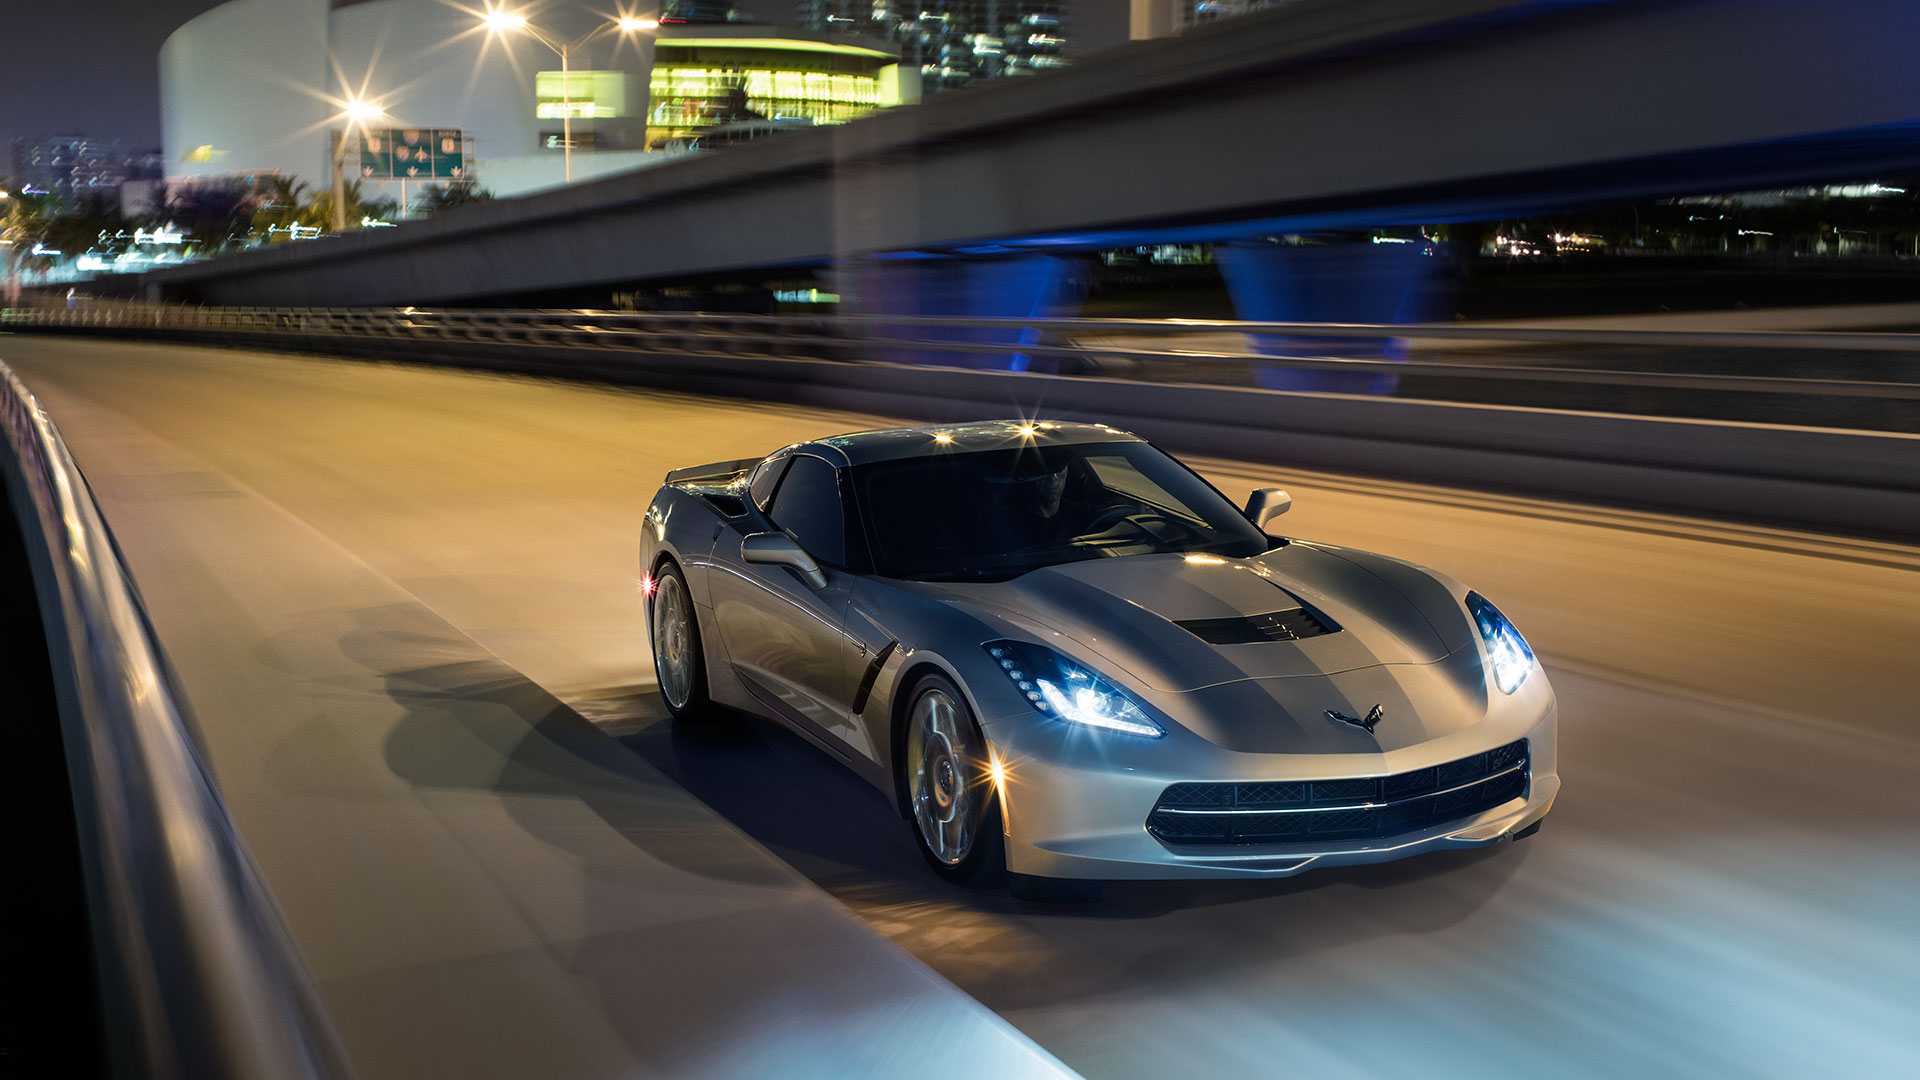 2017 Chevrolet Corvette Stingray Overview - The News Wheel